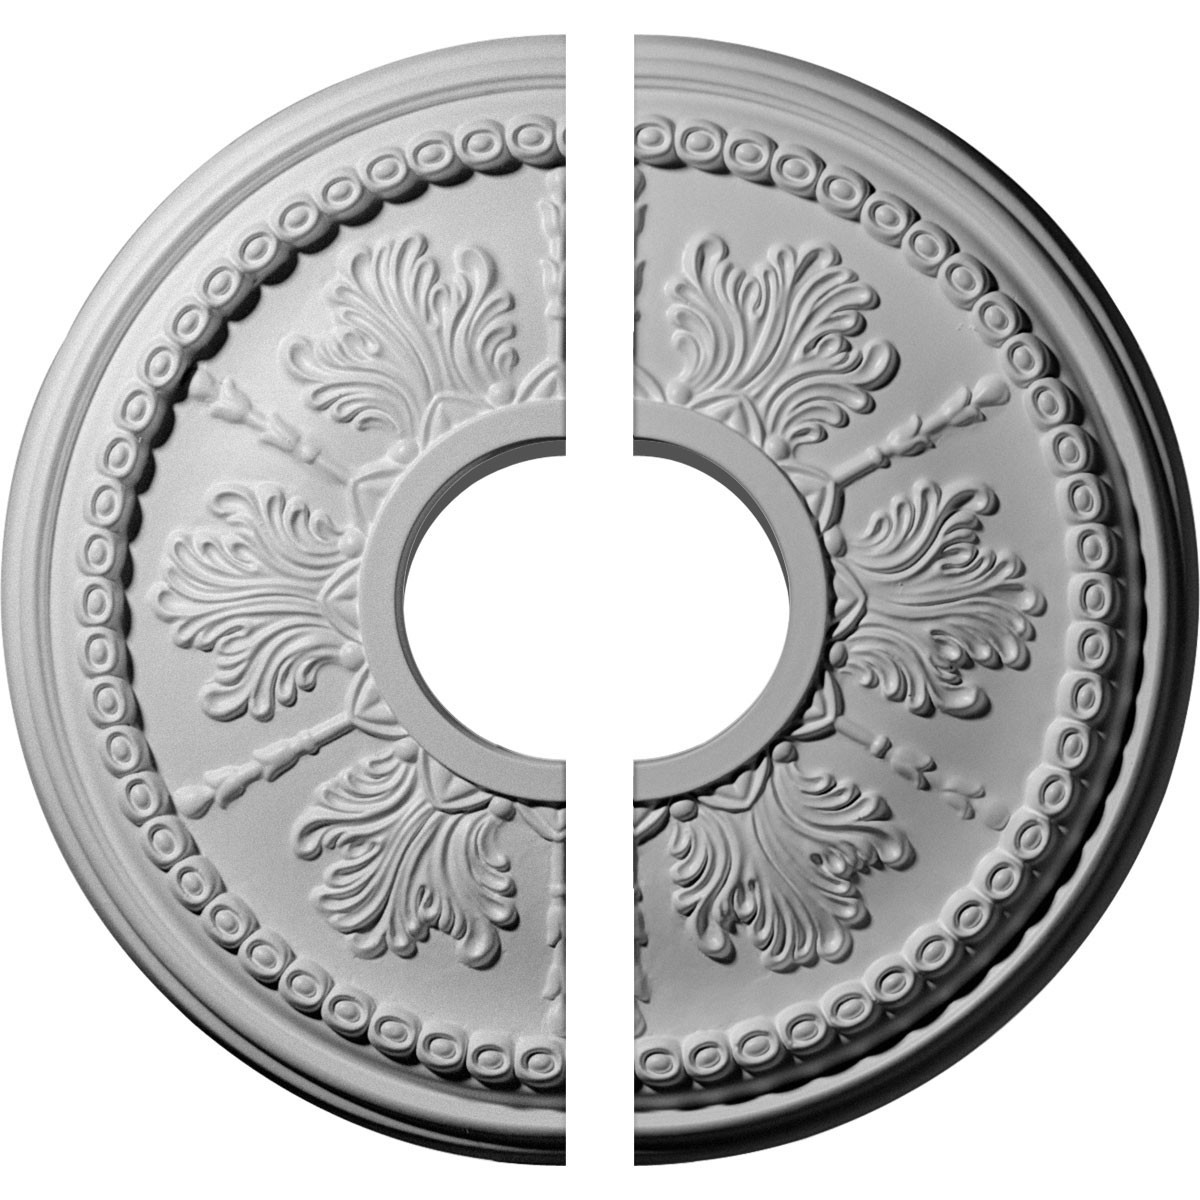 "EM-CM13TI2 - 13 7/8""OD x 3 3/4""ID x 1 1/4""P Tirana Ceiling Medallion, Two Piece (Fits Canopies up to 4 3/4"")"